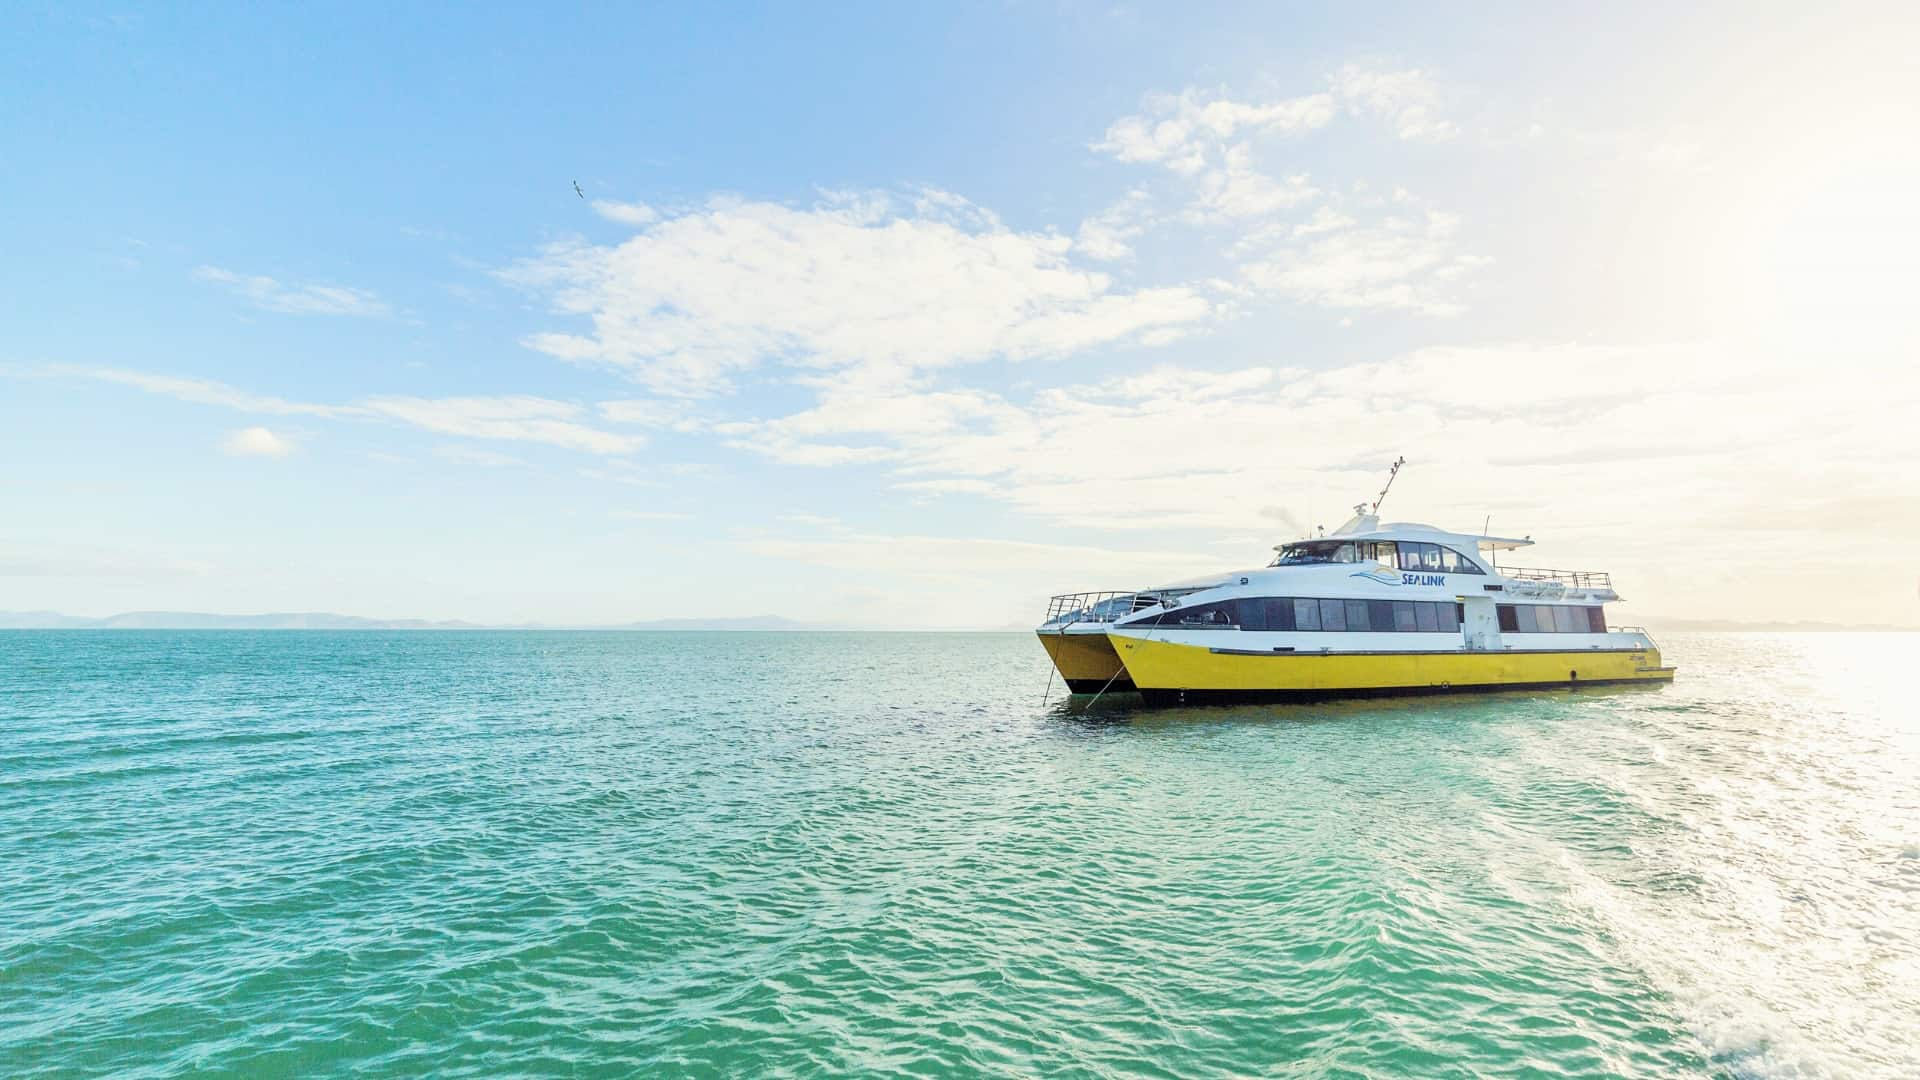 pakmag-The-top-10-things-to-do-on-magnetic-island-with-your-family-2021